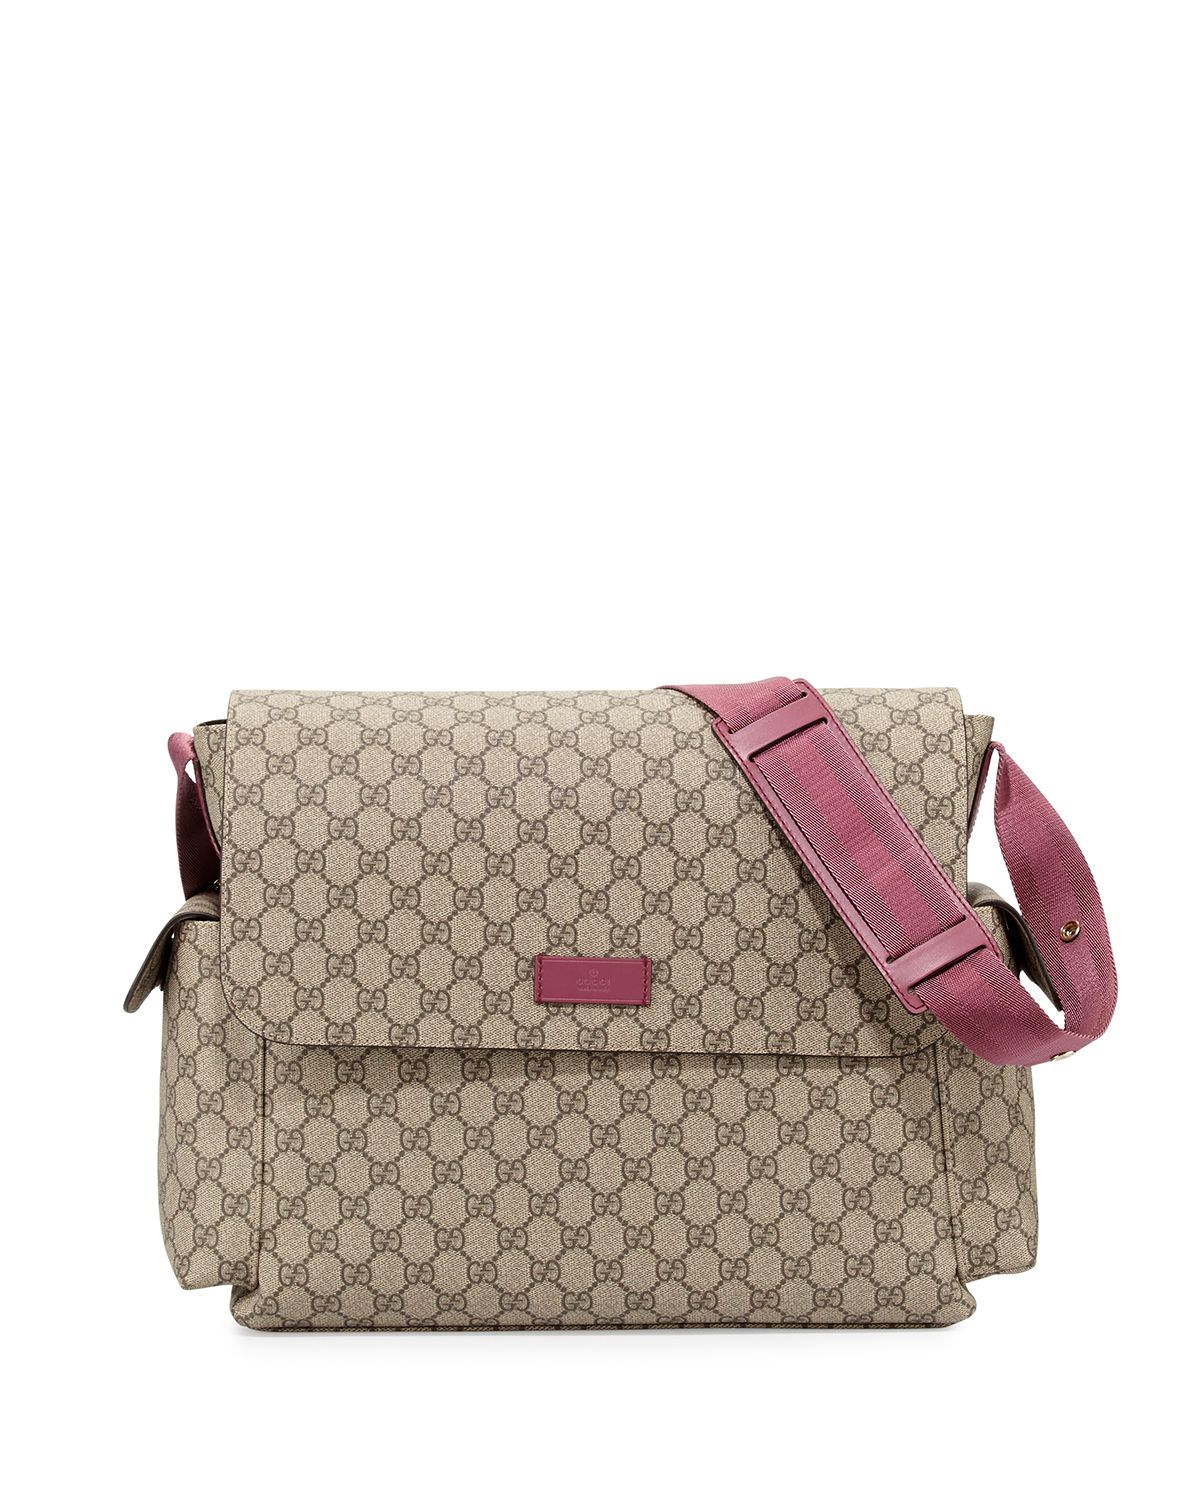 729309c06088 Guccissima Faux-Leather Diaper Bag w/ Changing Pad | Kids Style ...